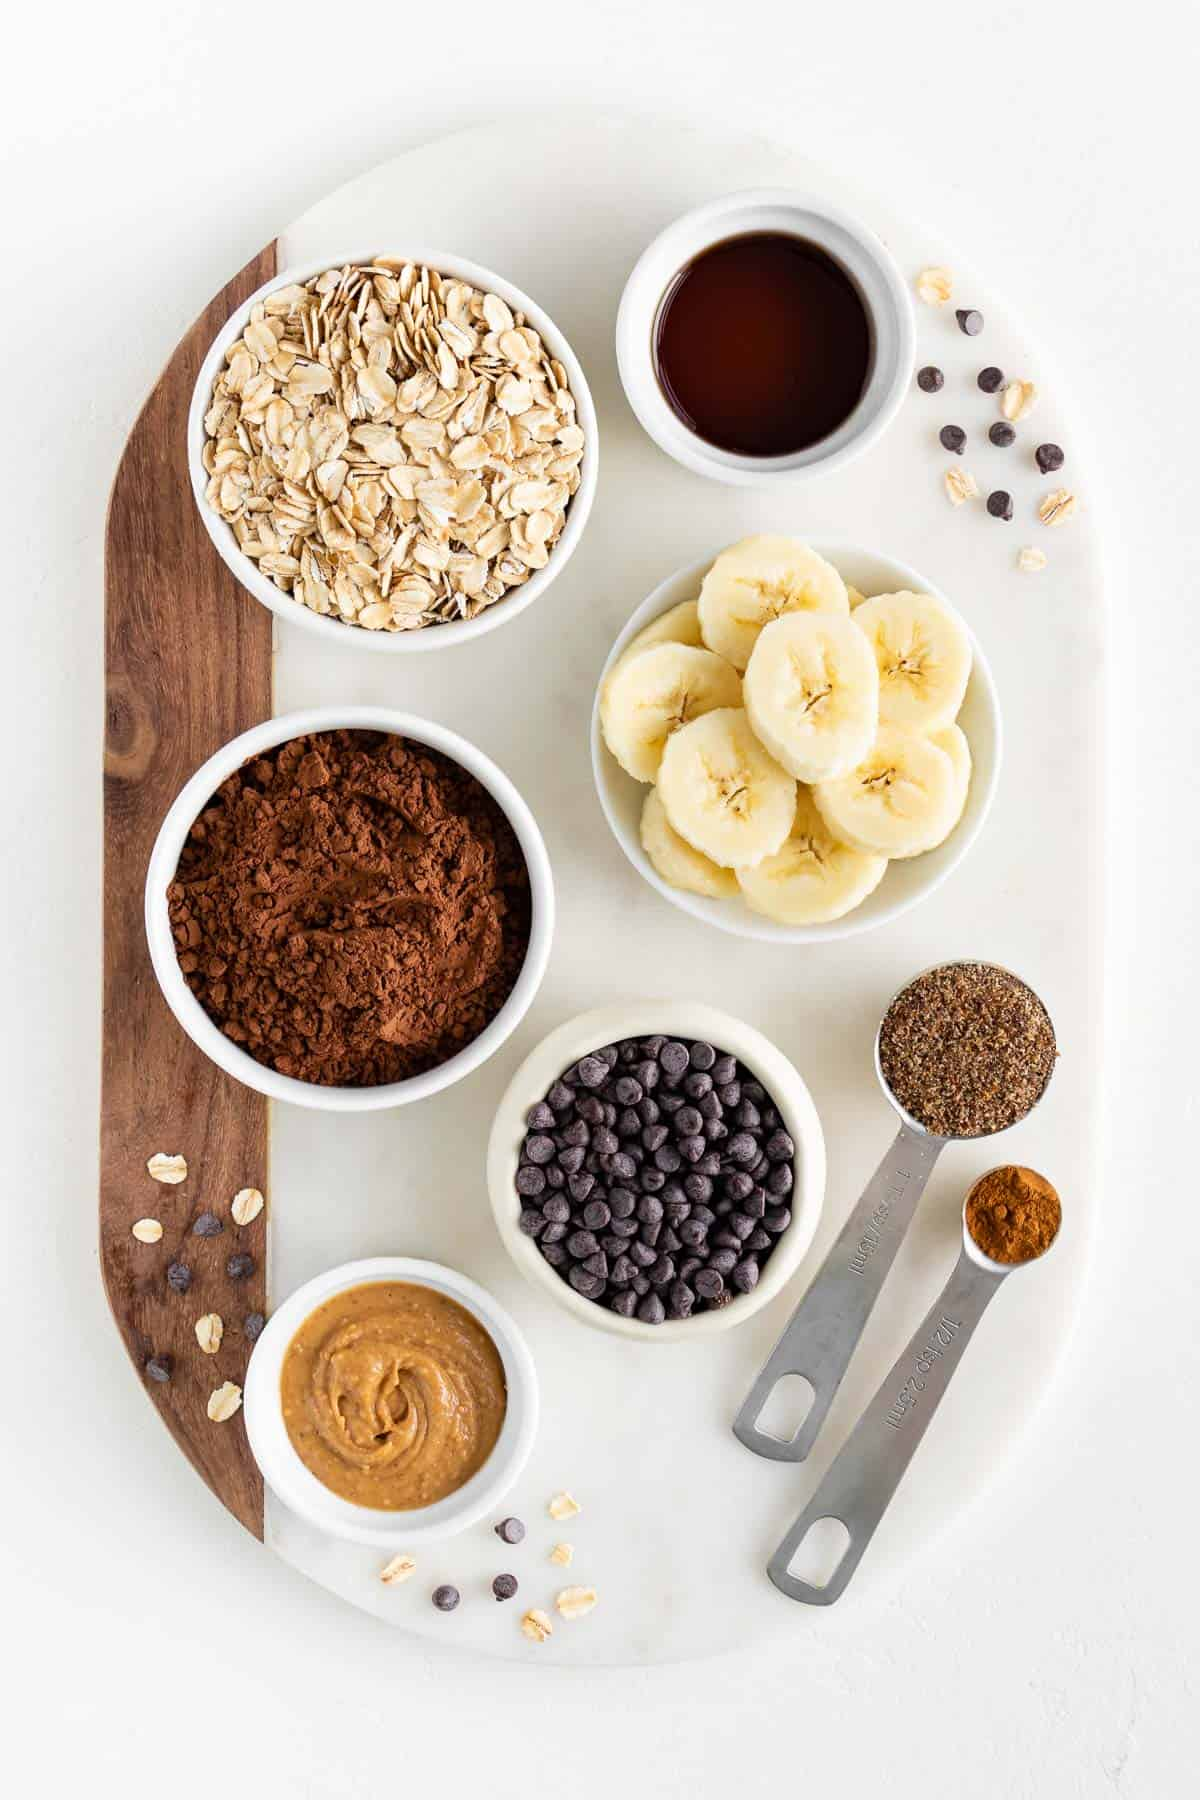 a marble board topped with small bowls containing rolled oats, cacao, bananas, peanut butter, chocolate chips, vanilla, cinnamon, and ground flaxseed